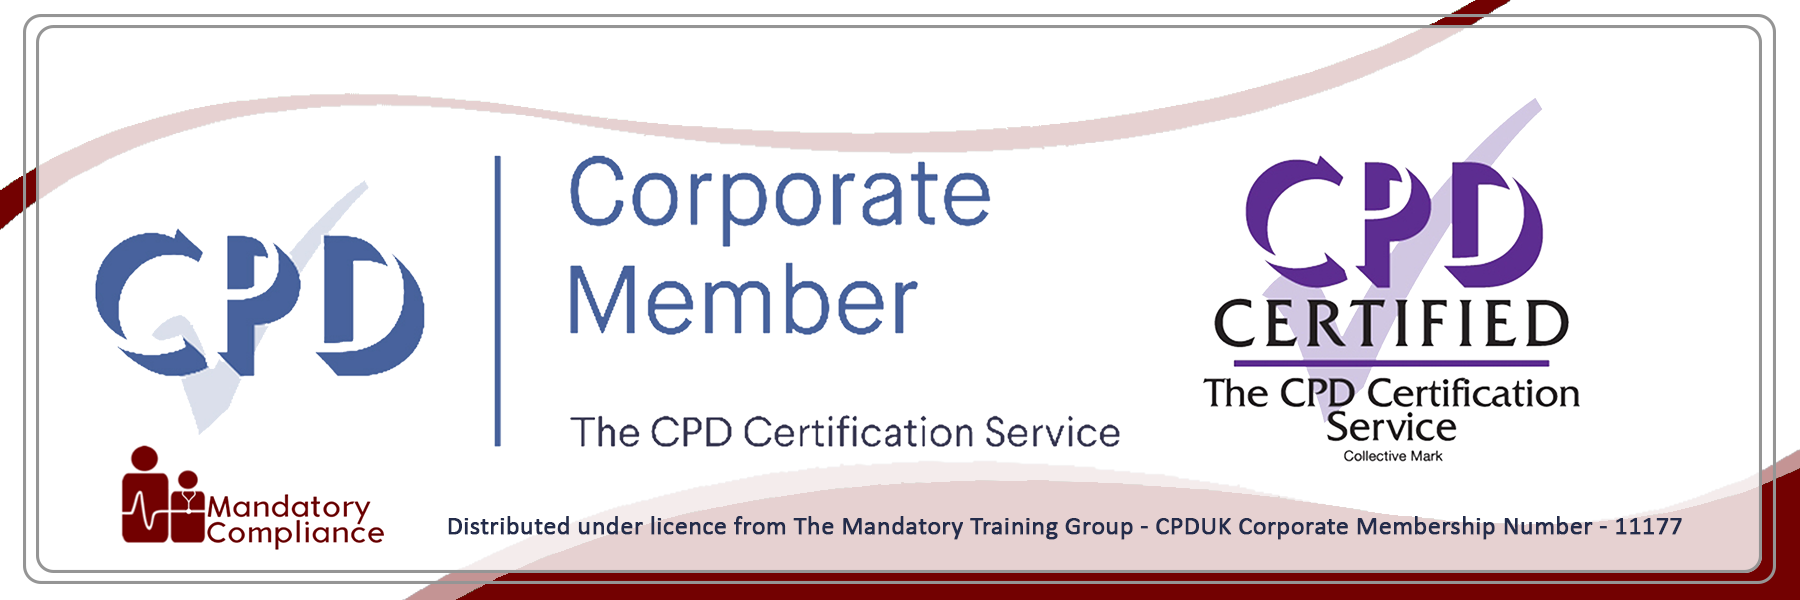 Mandatory Training for Care Home Staff - E-Learning Courses - Mandatory Compliance UK -